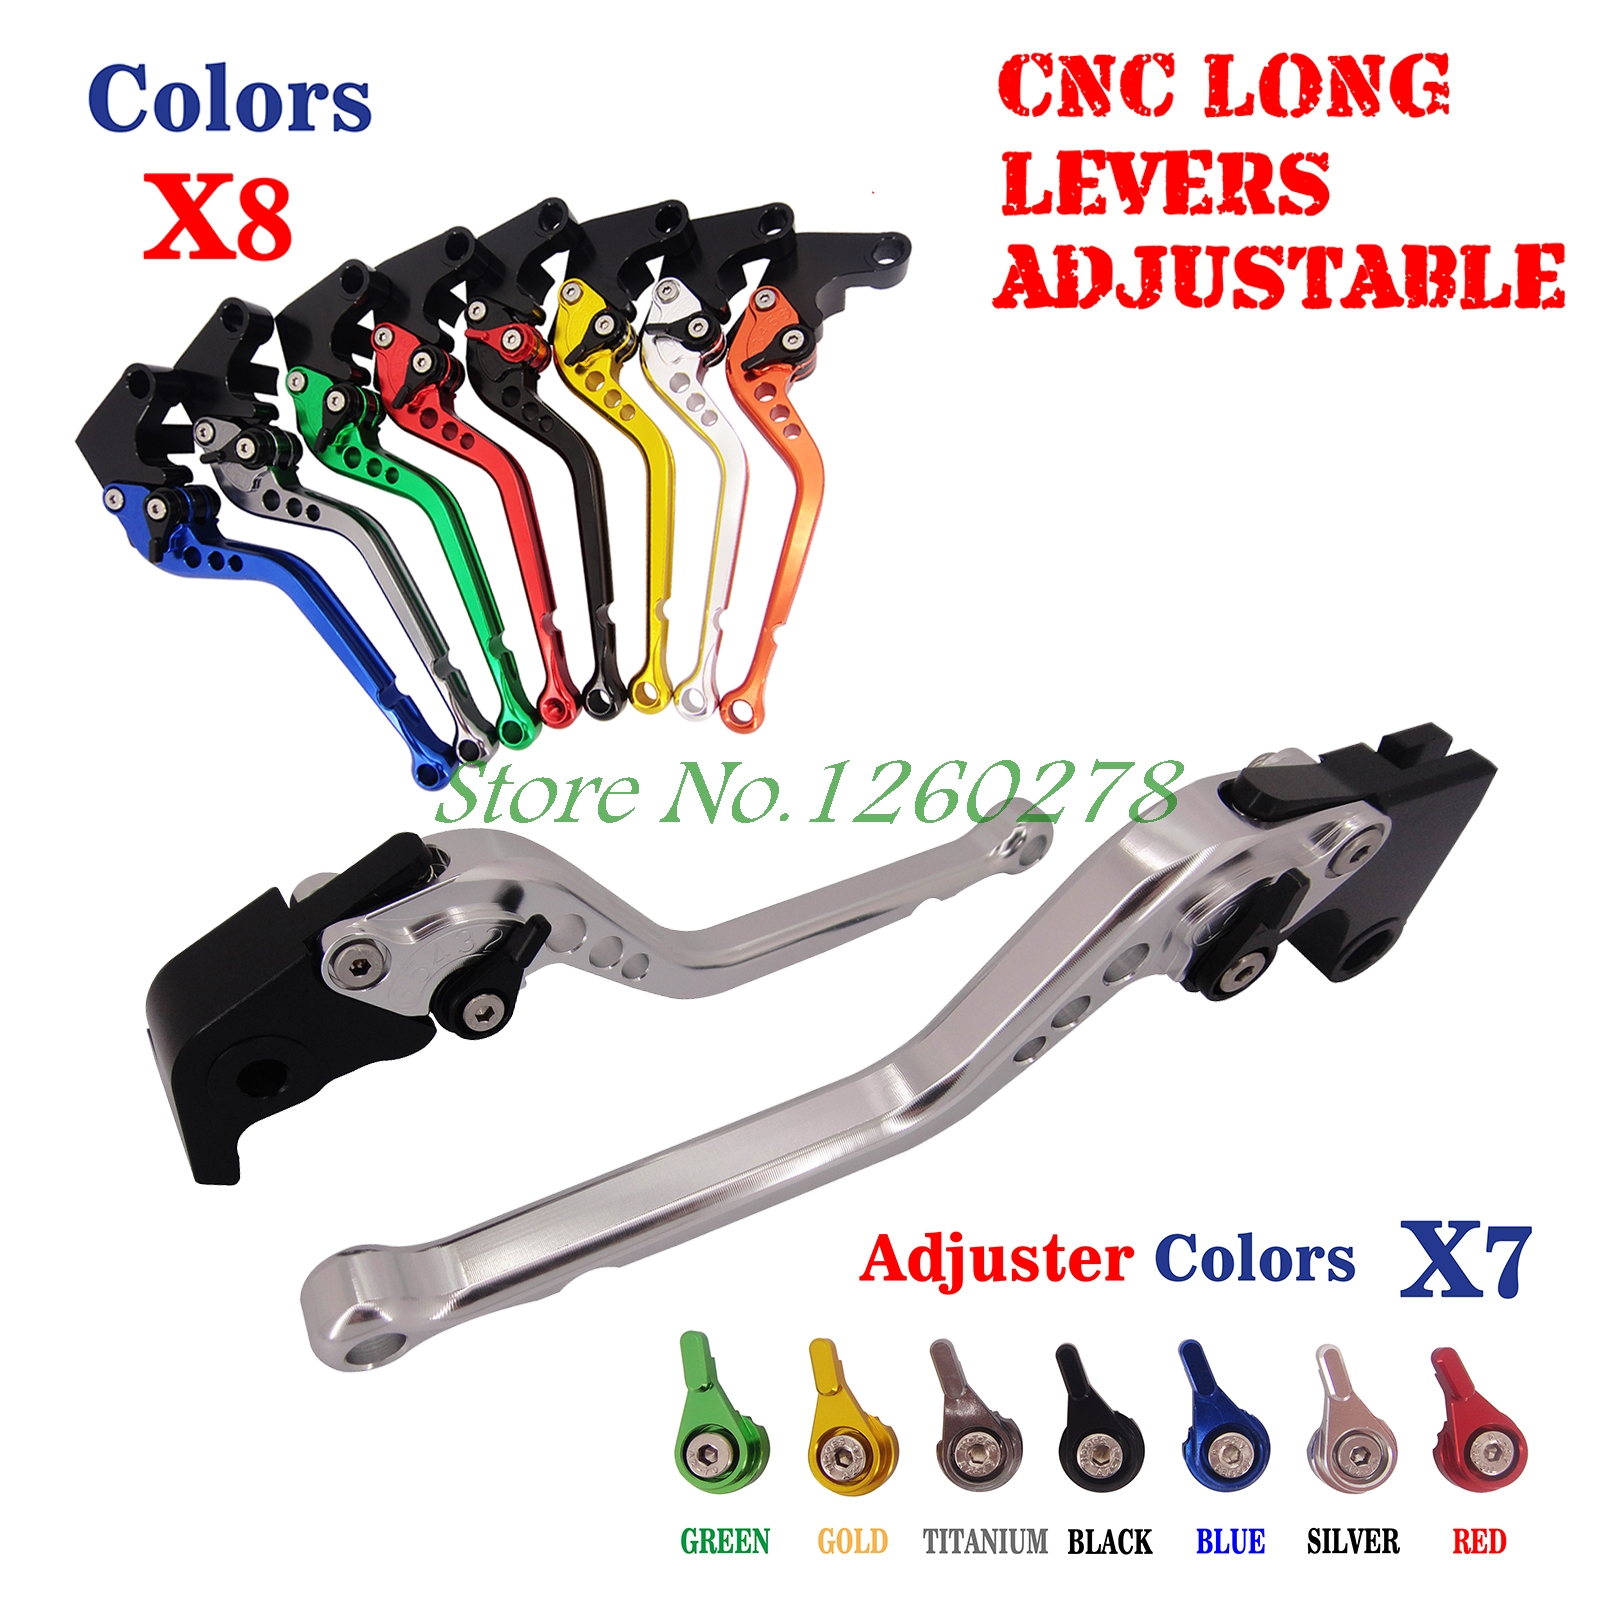 For Yamaha YZF R125 Adjustable 2008-2013 WR125X WR125R 2009-2014 CNC Long Racing Brake Clutch Levers (6.8 inch )<br><br>Aliexpress